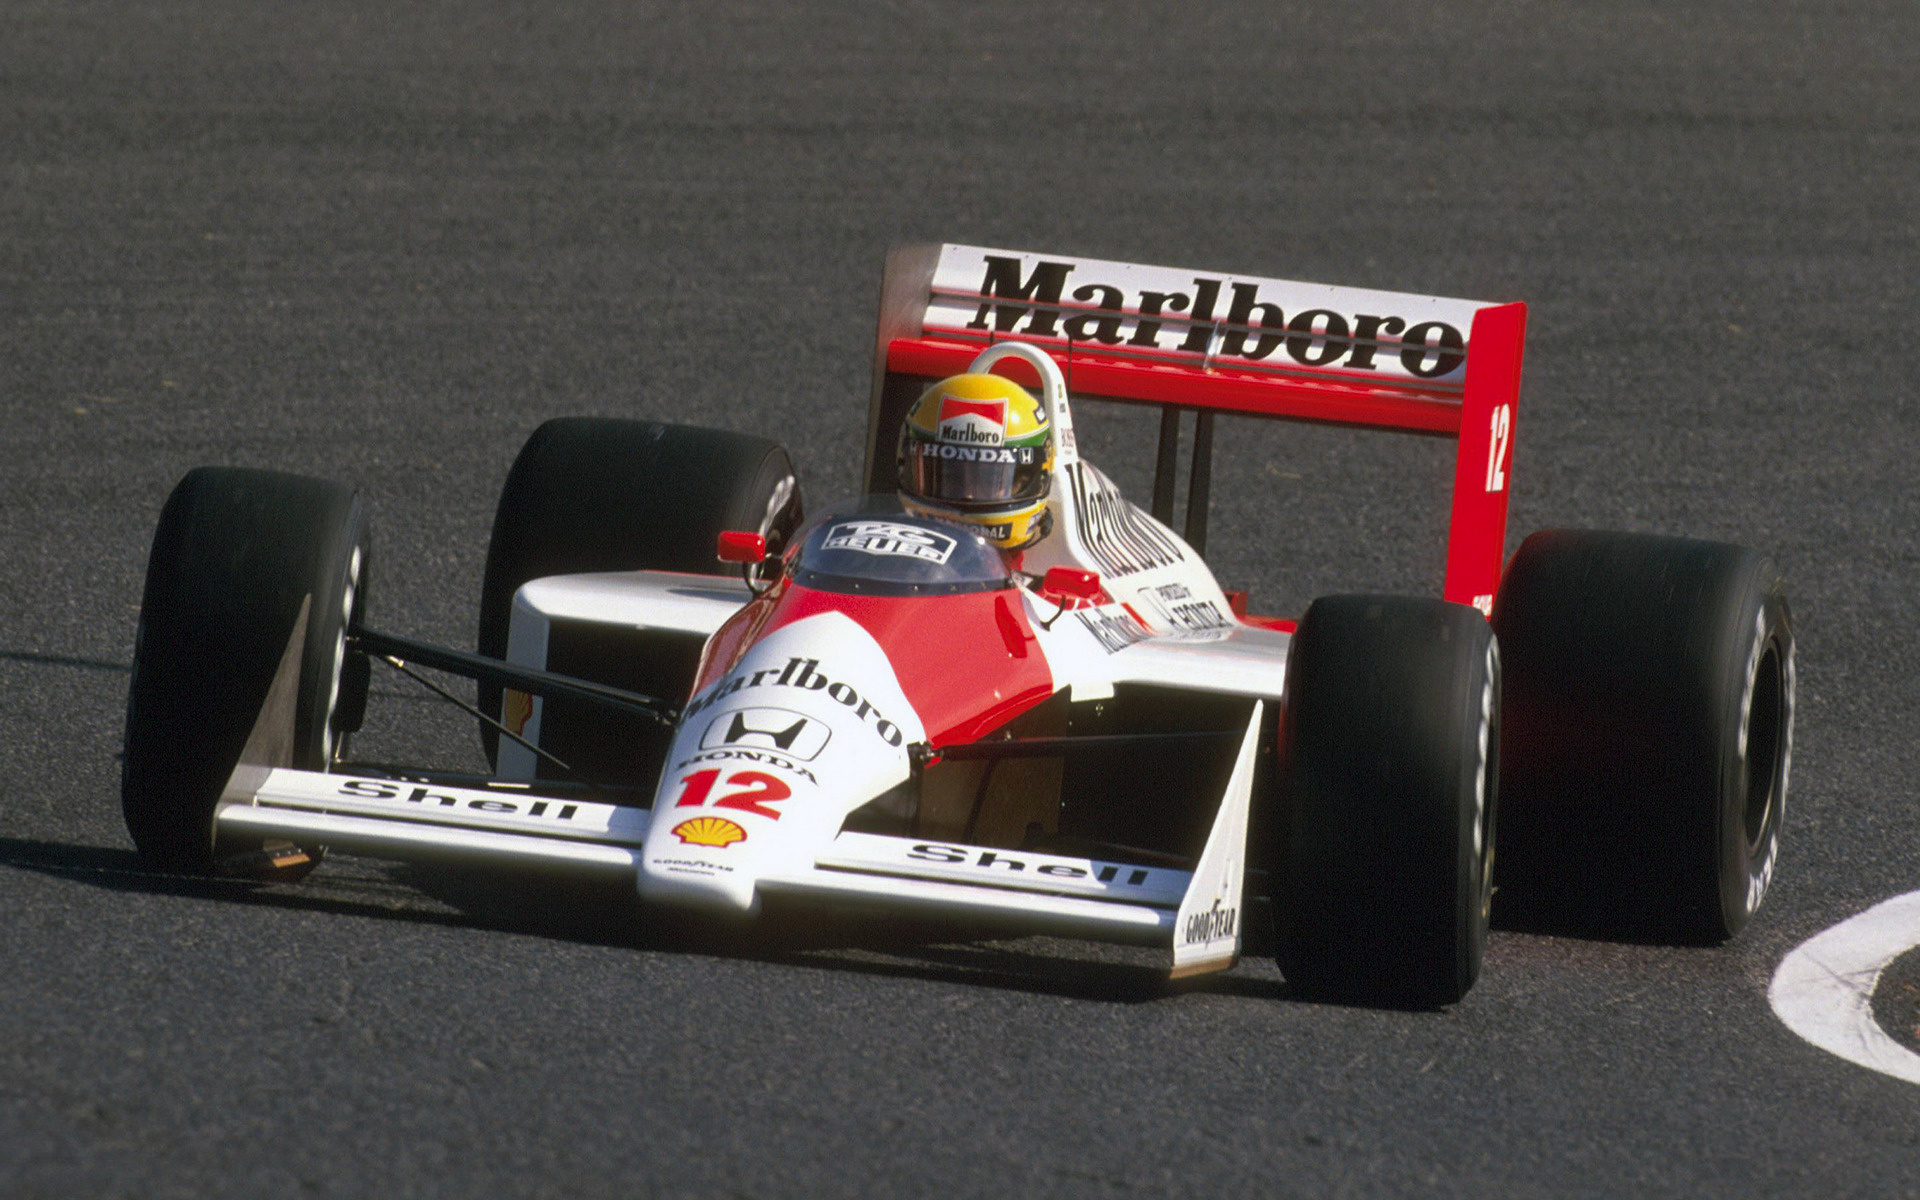 1988 mclaren honda mp44 wallpapers and hd images car